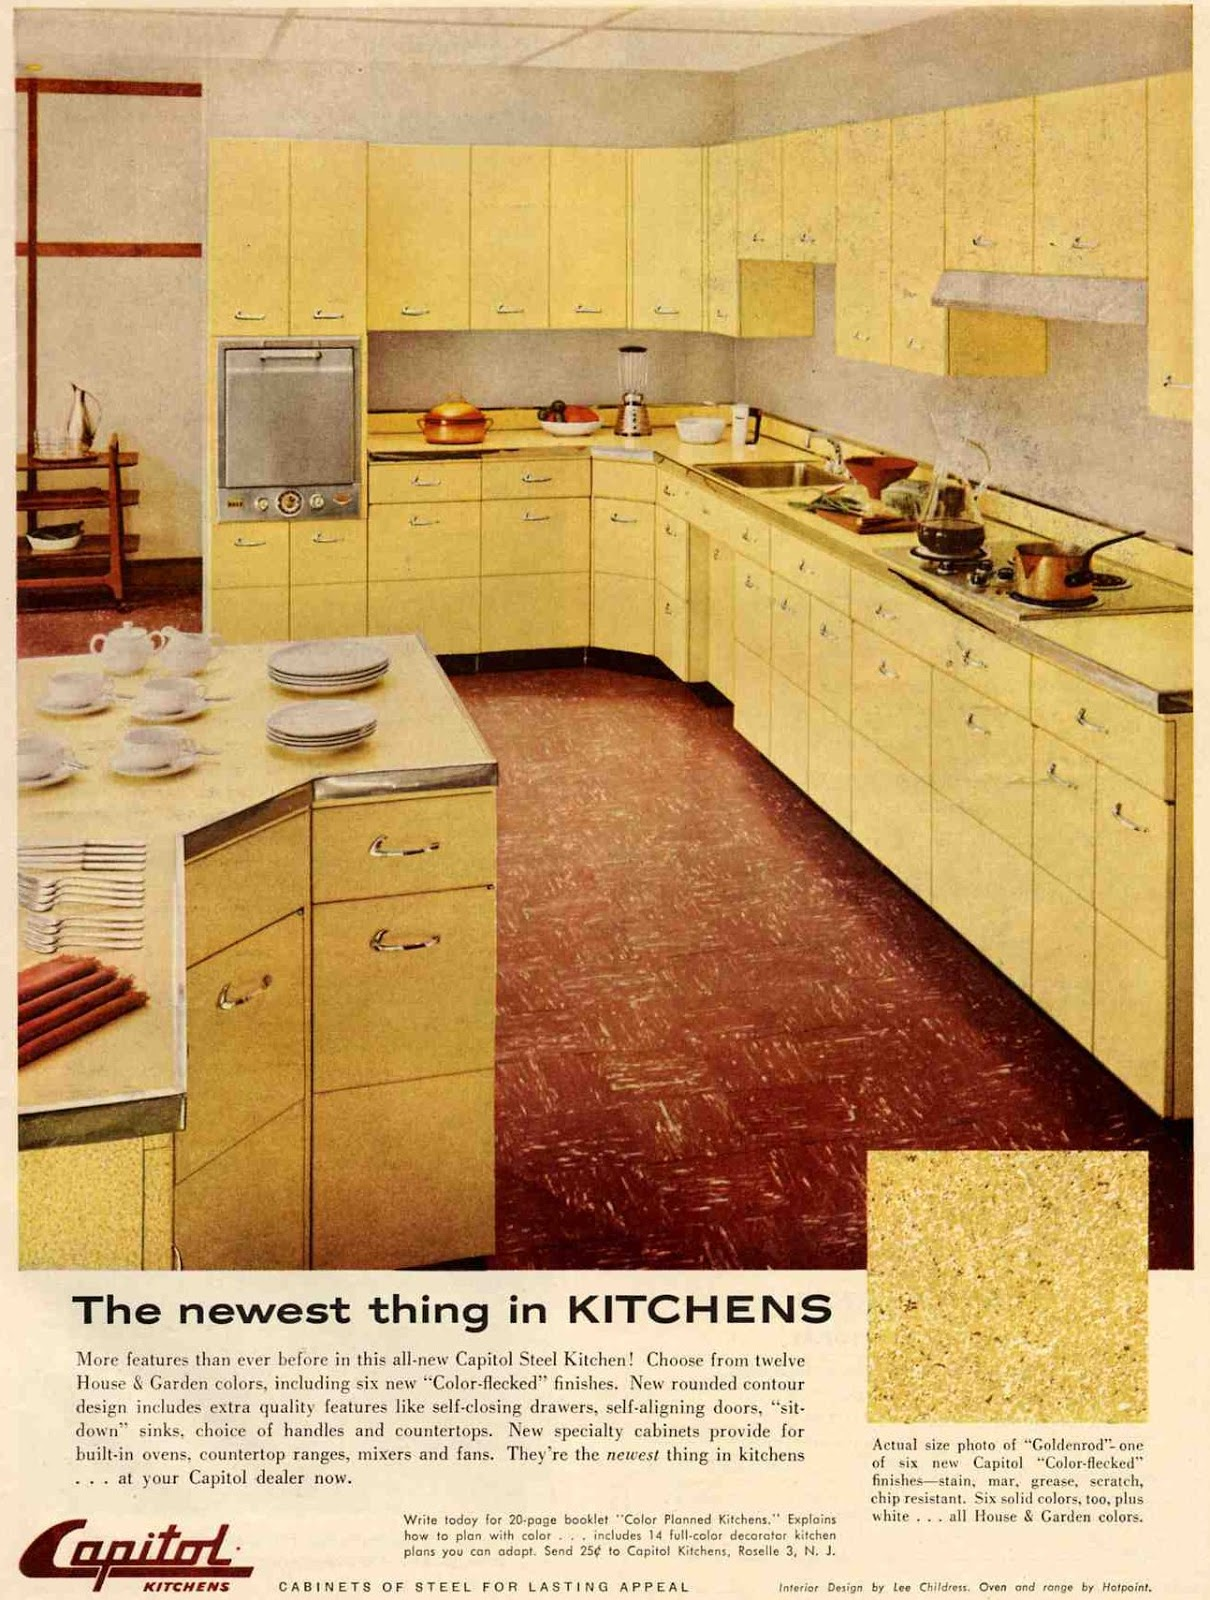 Atco Blue Flame Kitchen 1930s Kitchen Smaller Sizes Affordability Functionality Fa